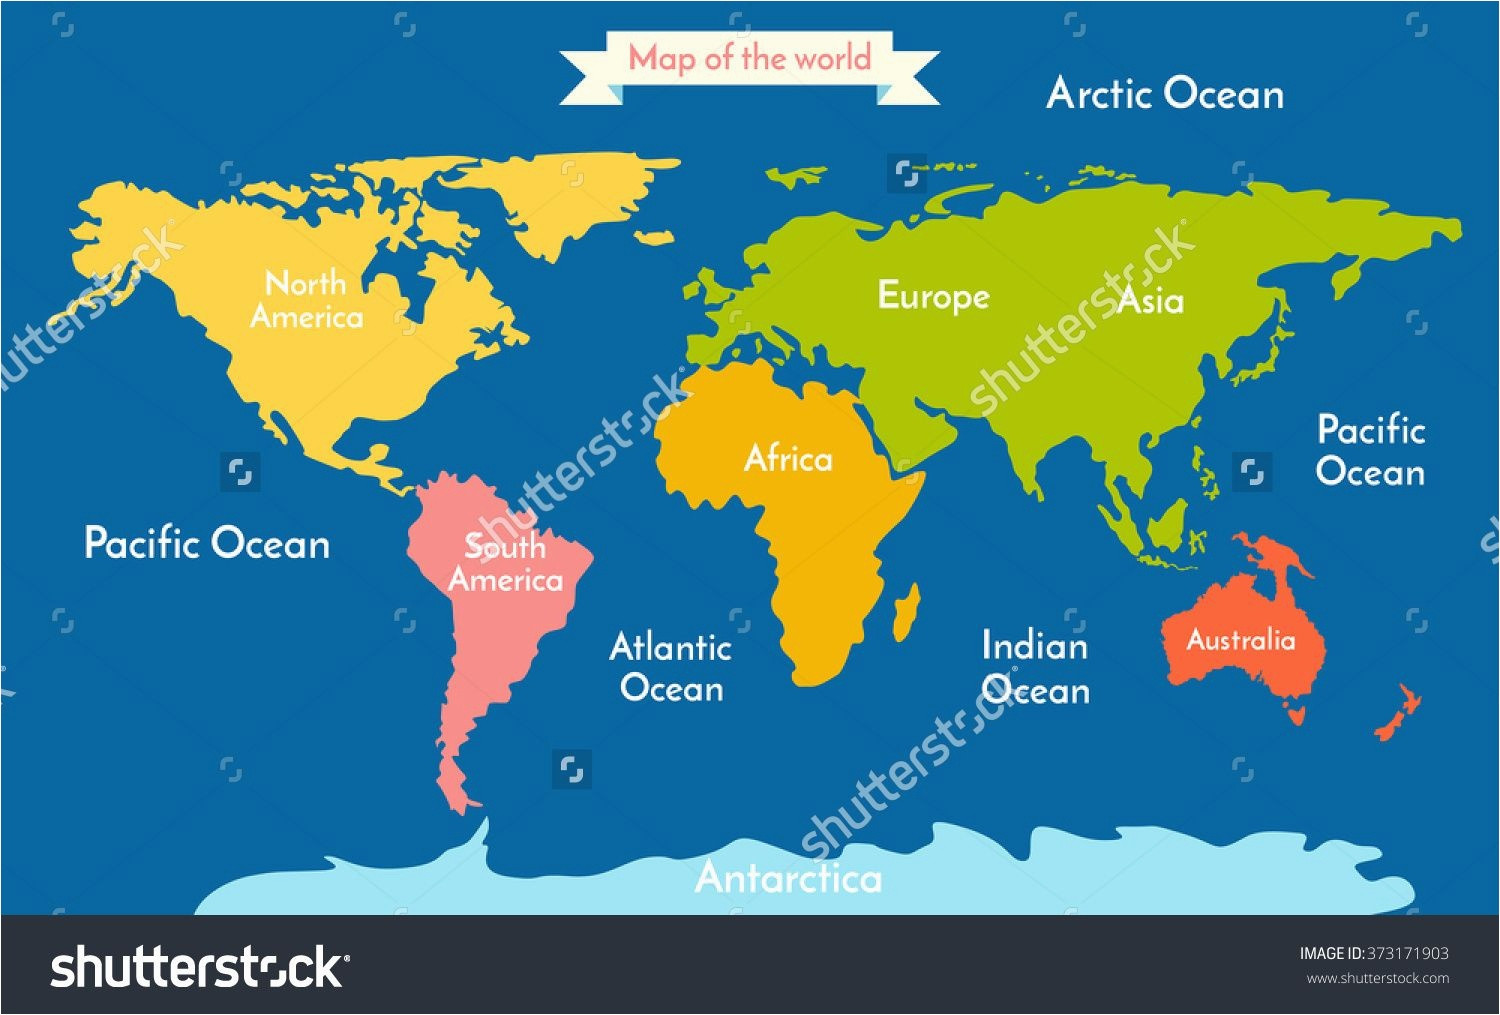 Printable Map With Continents And Oceans Lovely 7 Continents And 5 Oceans In This World Telugu New World Europe Map